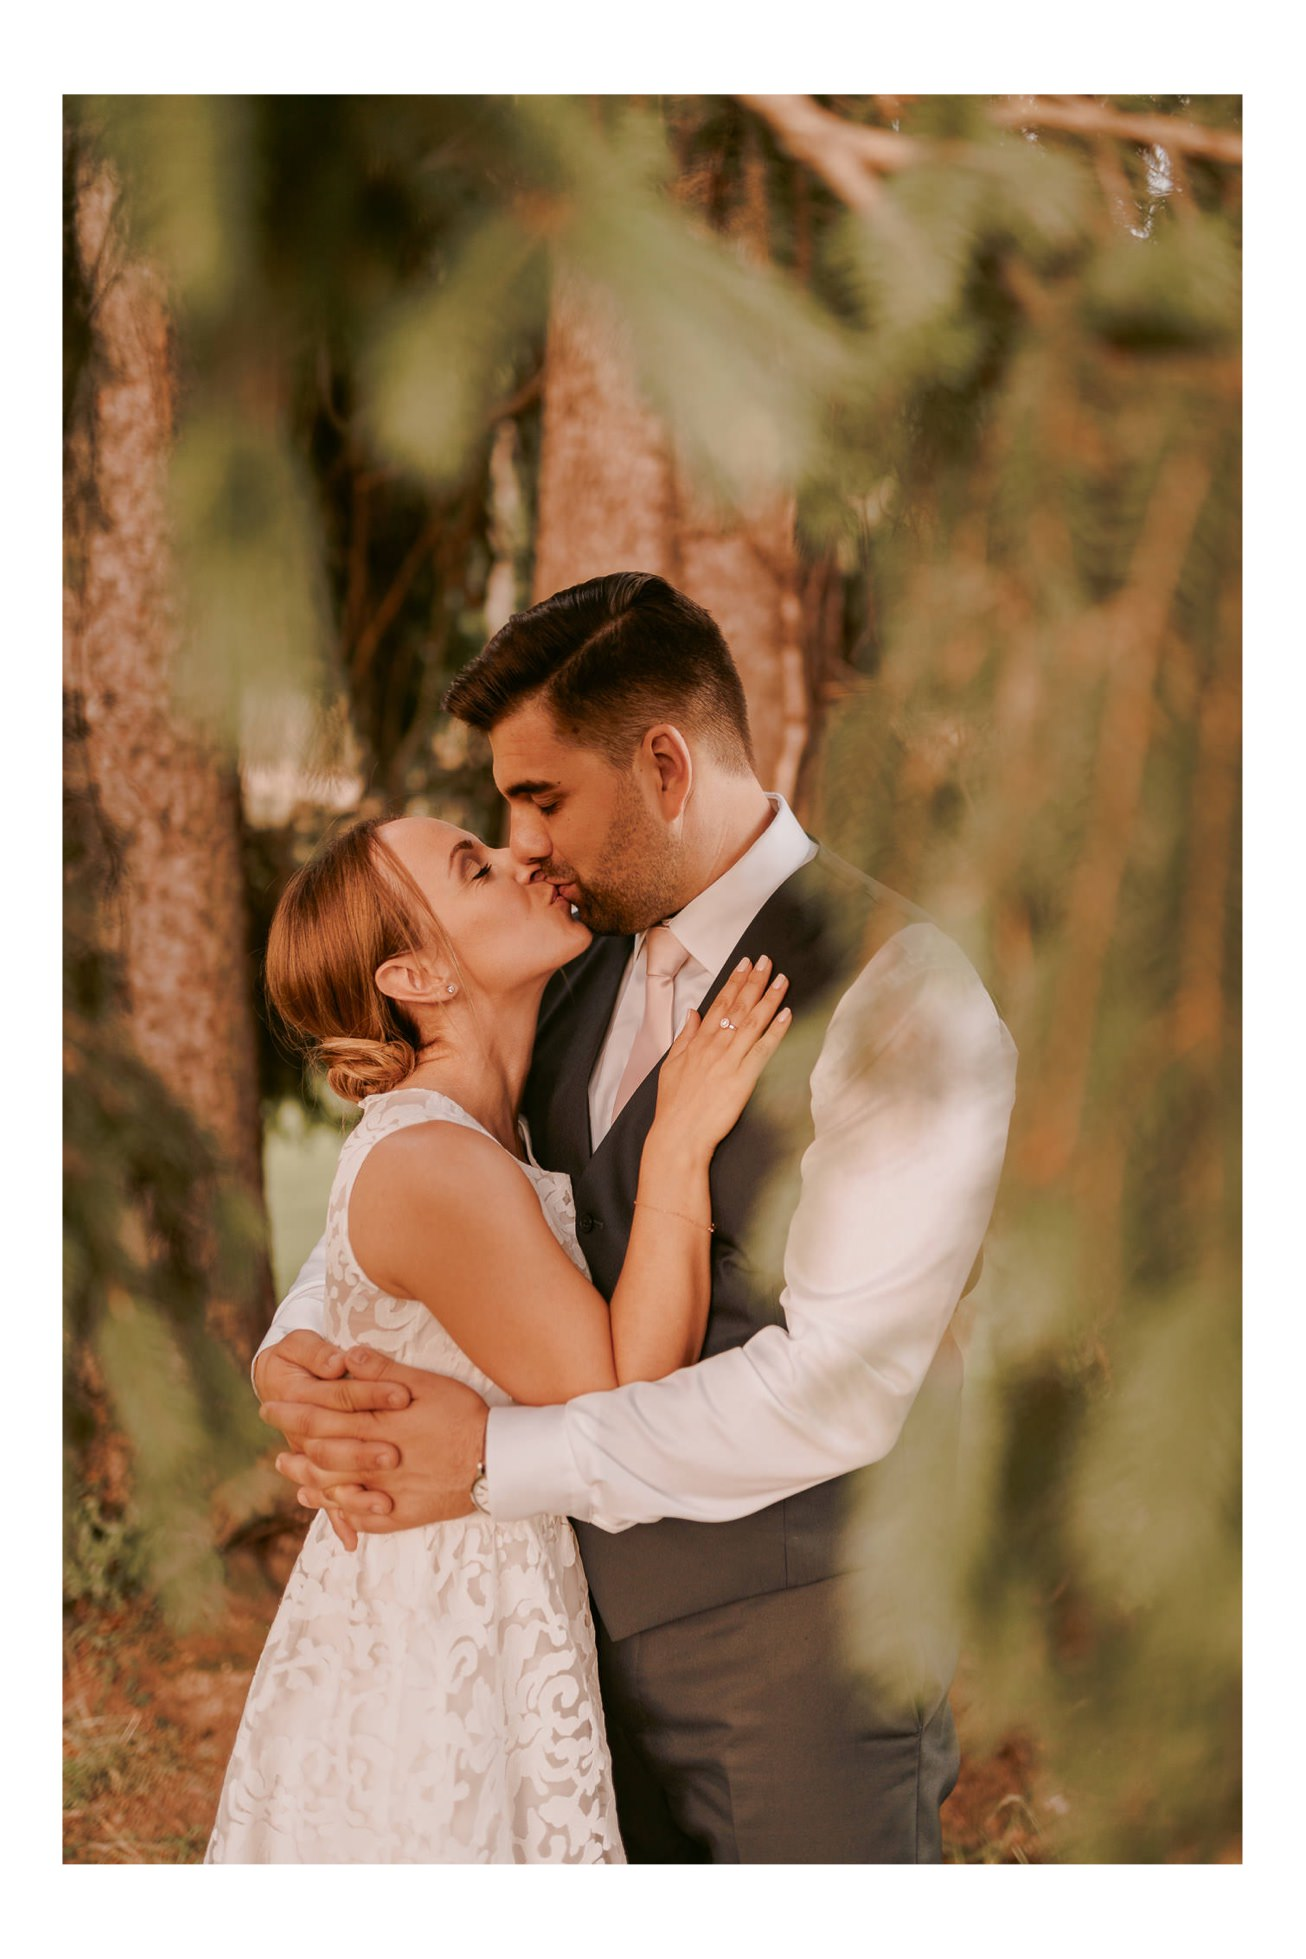 Ljubljana castle Dvor jezersek Wedding Photographer 71